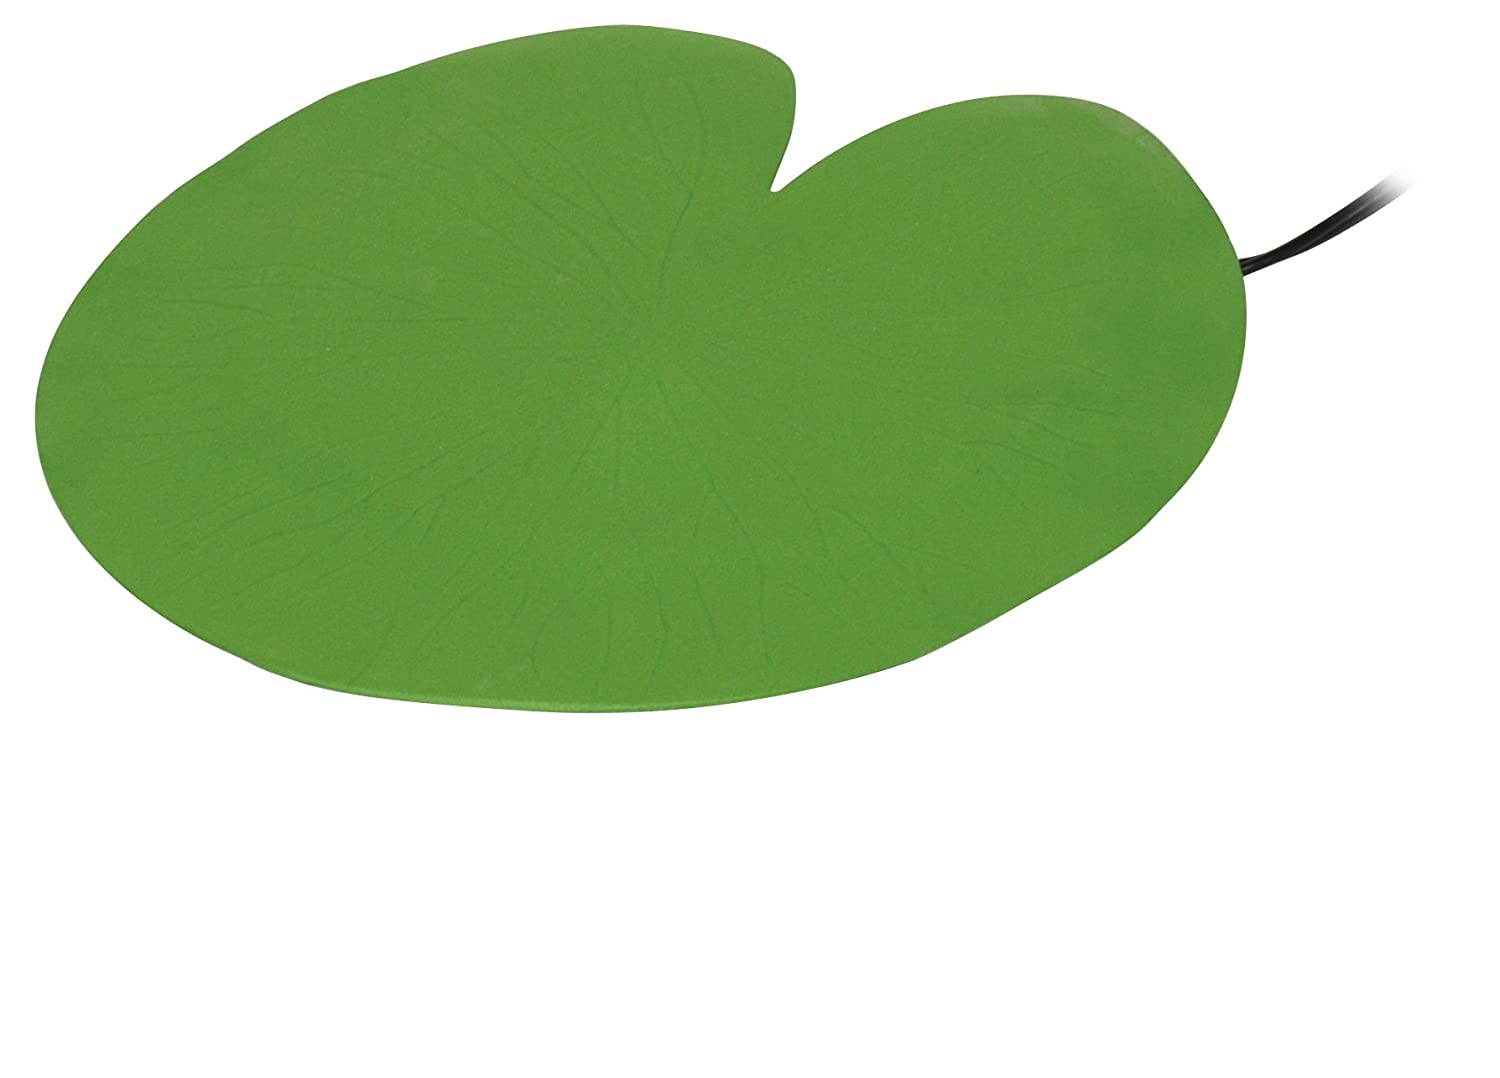 10 Watt Aquascape Lily Pad Light for Pond and Water Feature